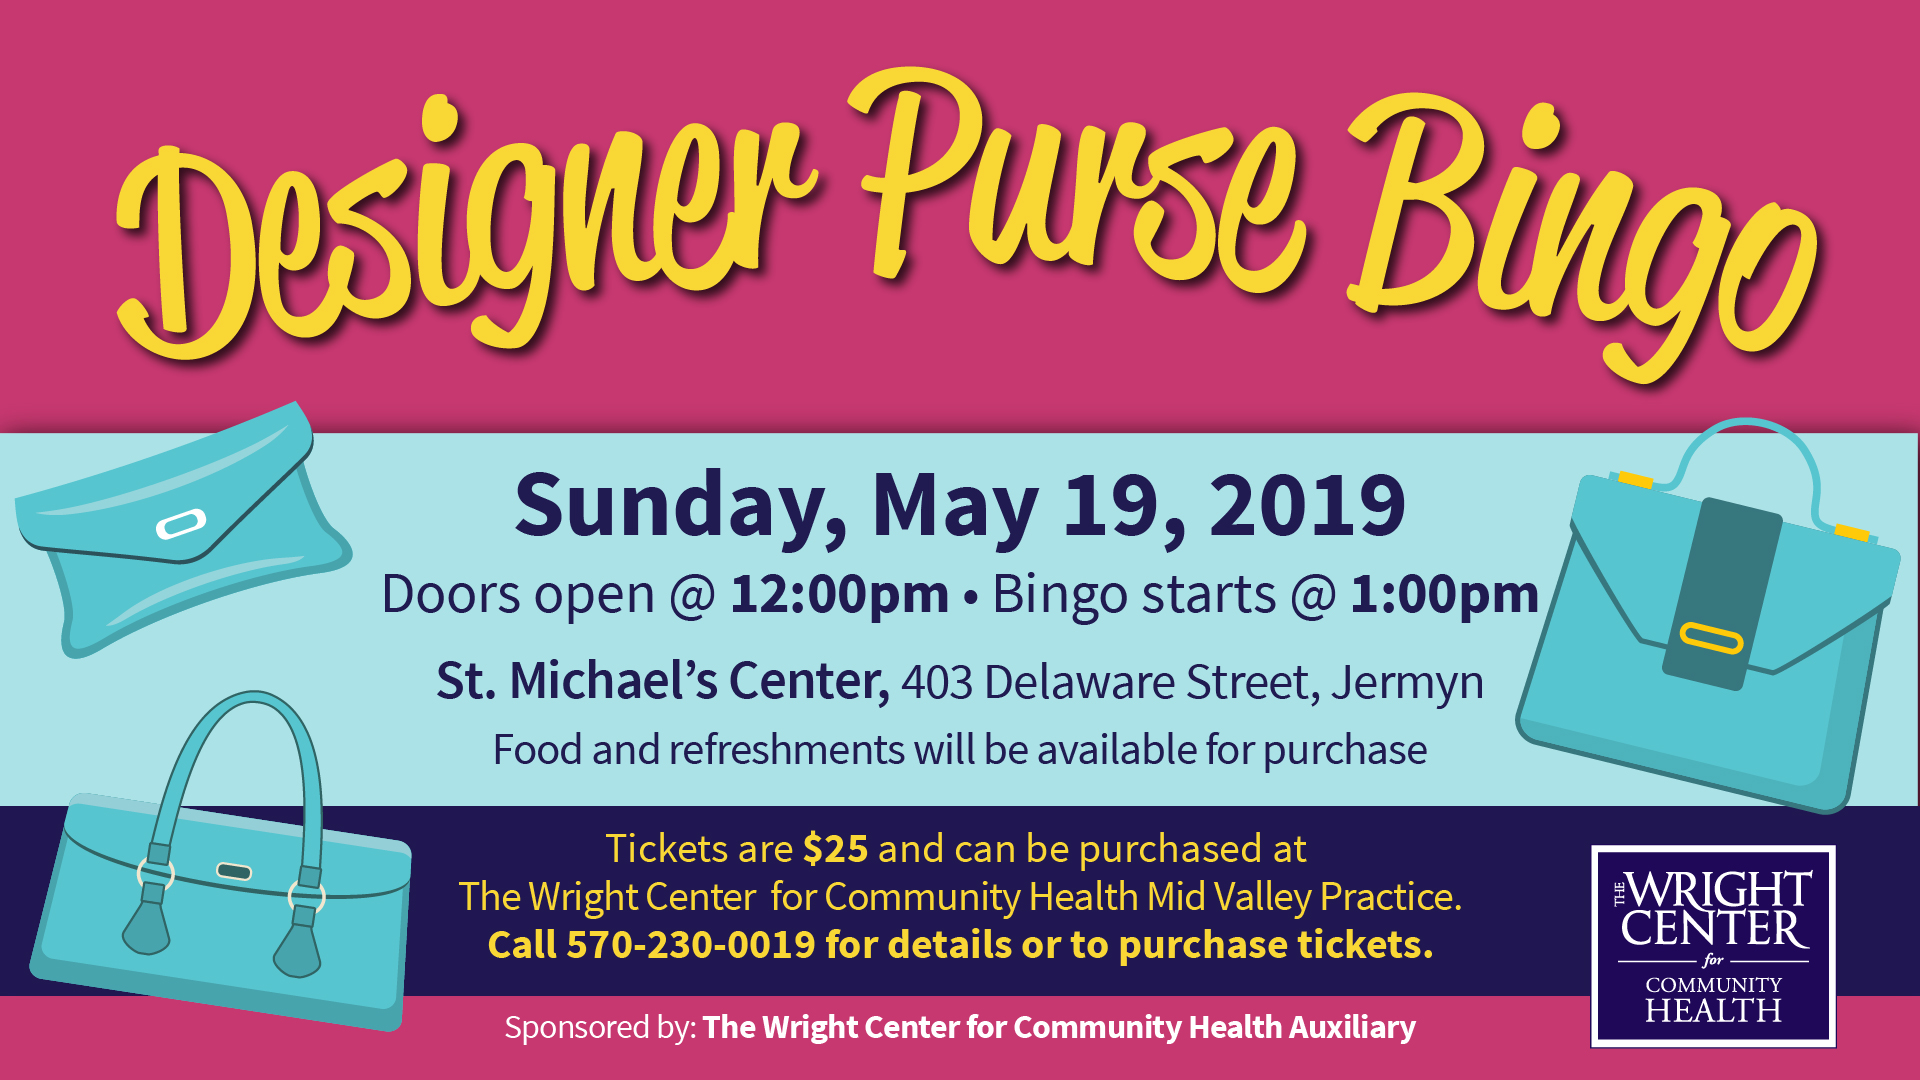 2019 Purse Bingo Flyer